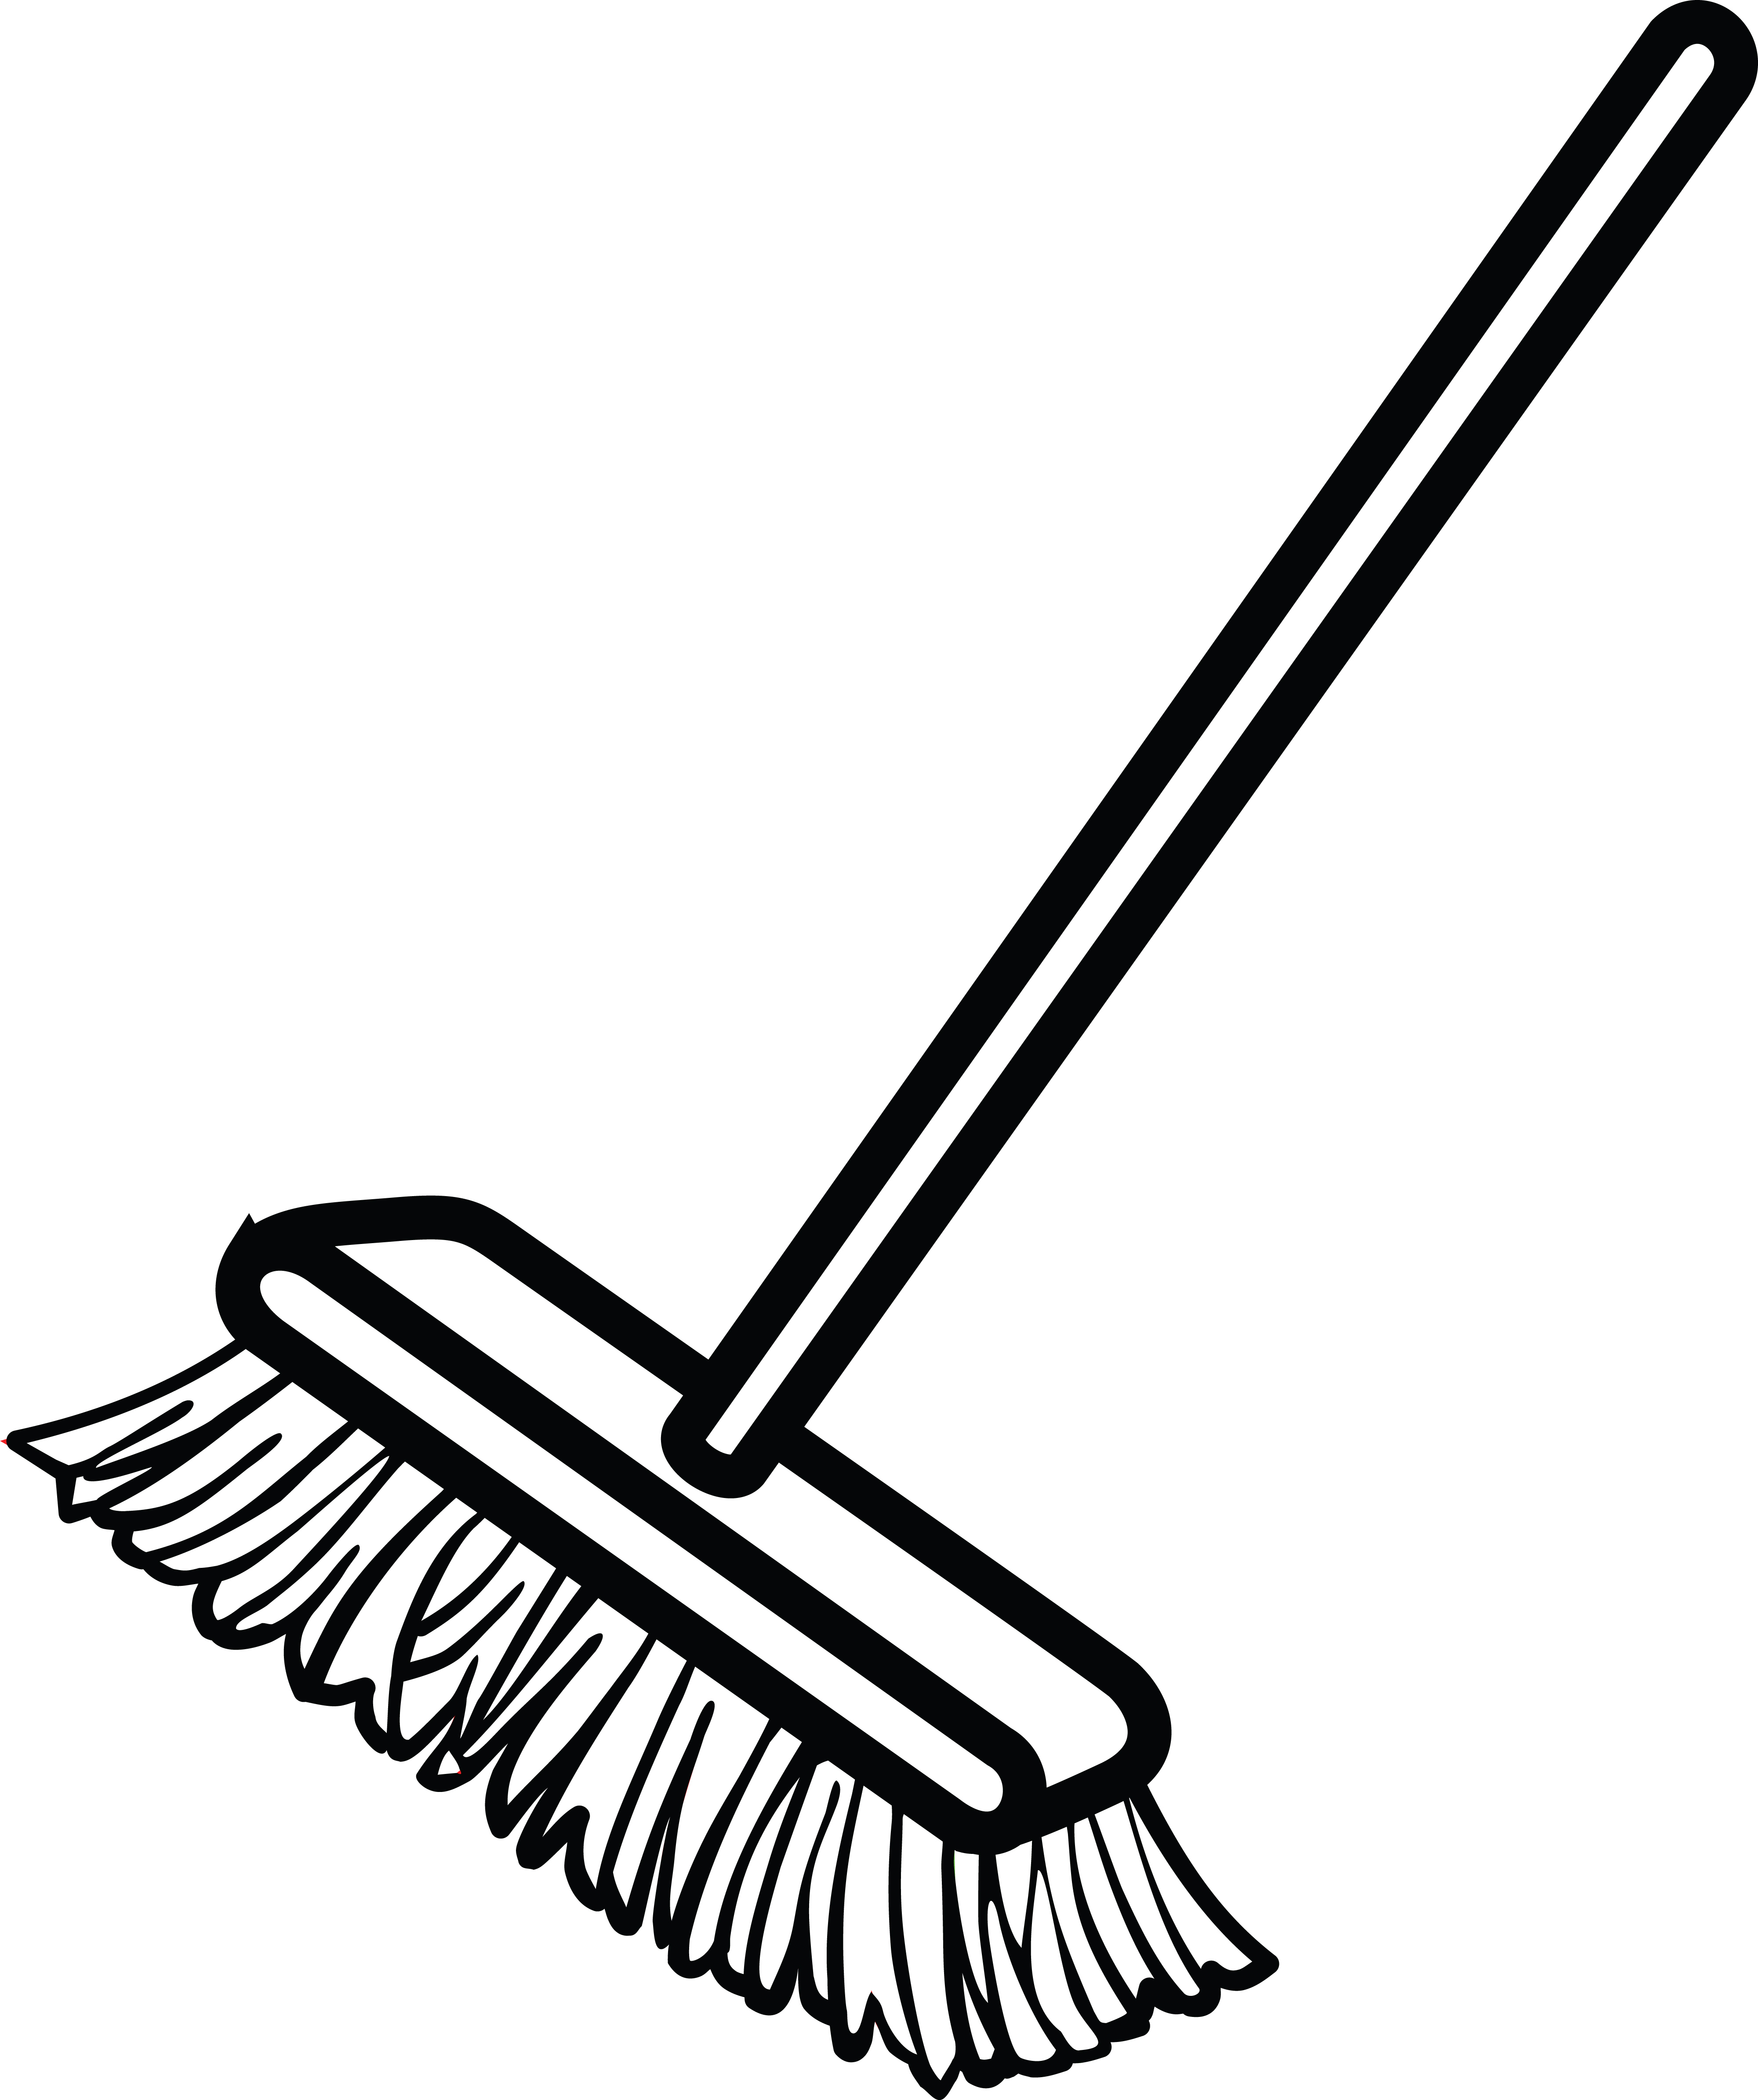 Clipart Of Broom.